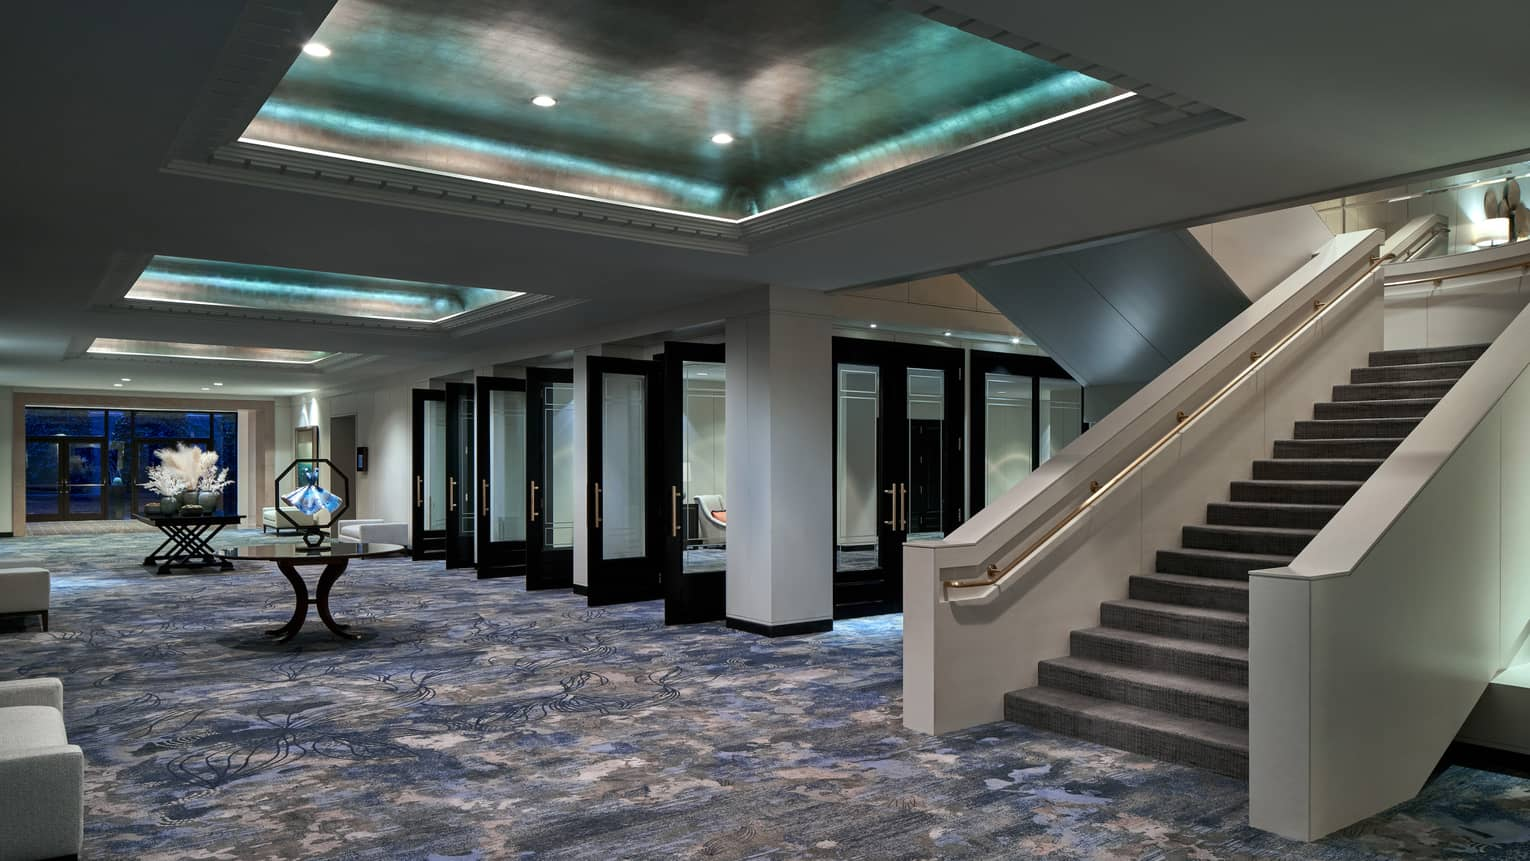 Events hall with blue-ish carpeting, grand staircase and inset metallic ceiling with recessed lights